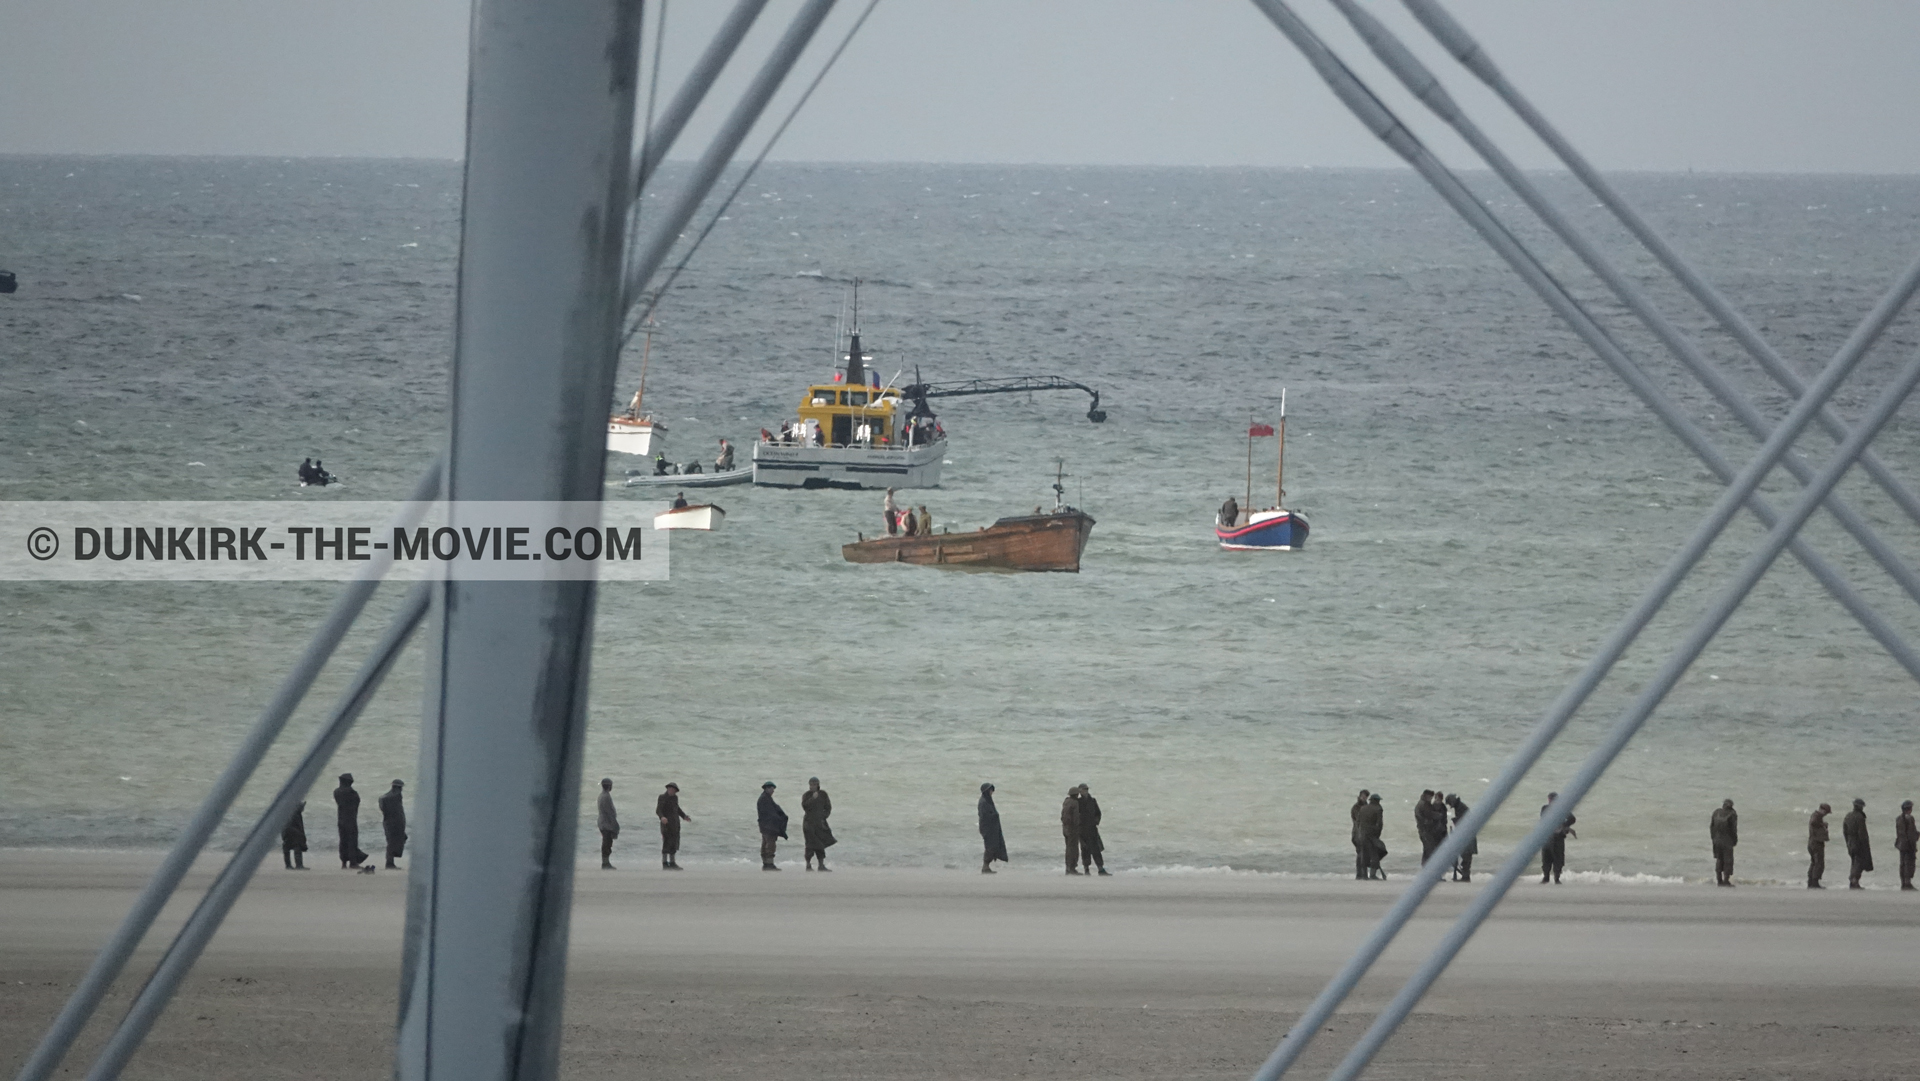 Picture with boat, Ocean Wind 4, beach, Henry Finlay lifeboat,  from behind the scene of the Dunkirk movie by Nolan